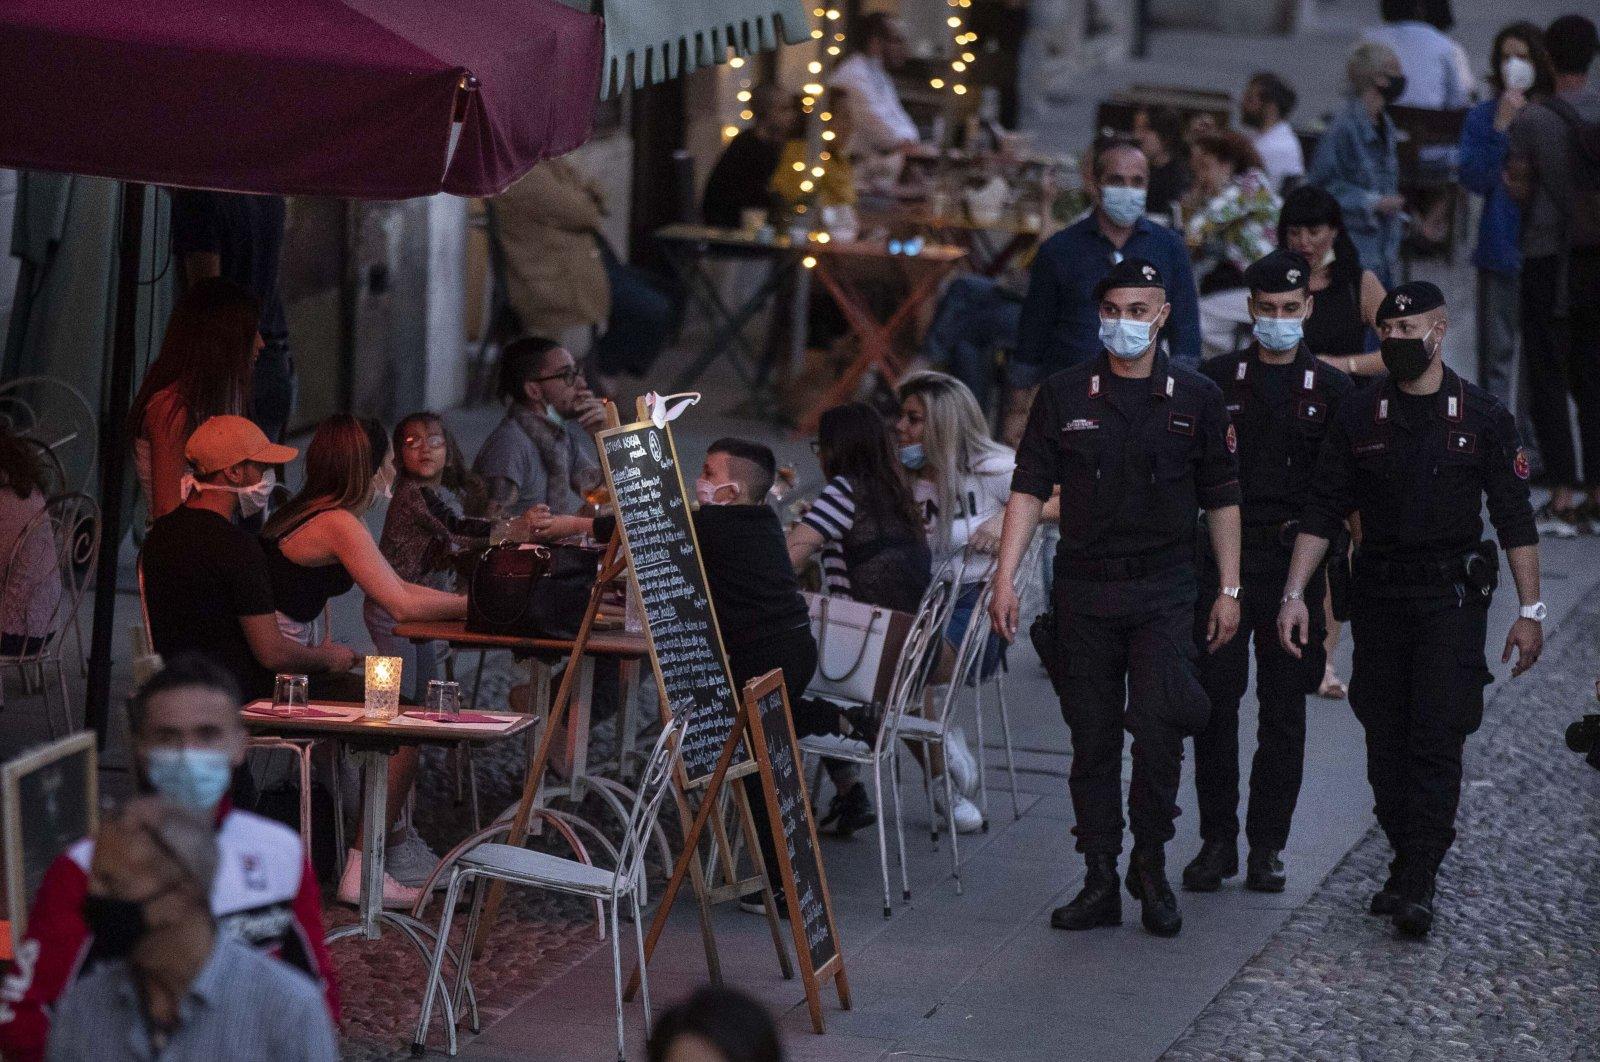 Carabinieri officers patrol the city trendy Navigli district in Milan, Italy, Tuesday, May 26, 2020. (AP Photo)